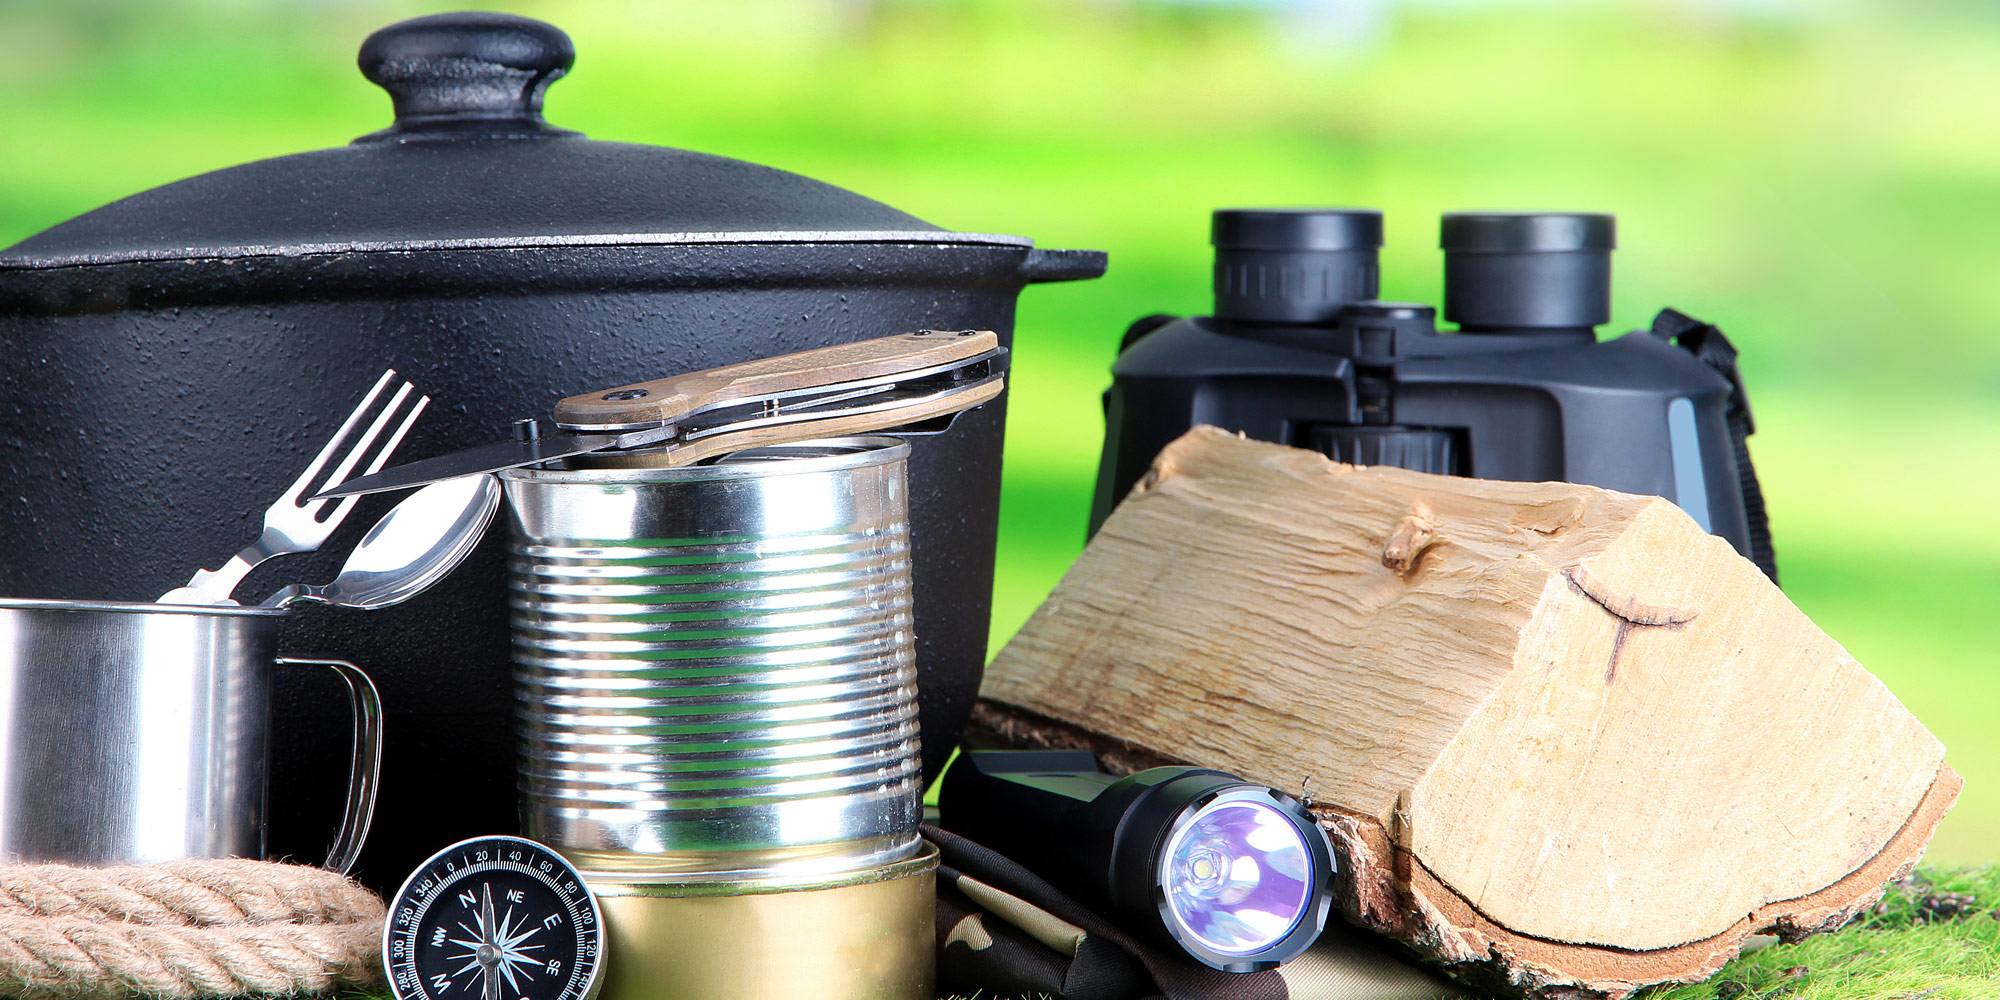 camping gear and pots and pans